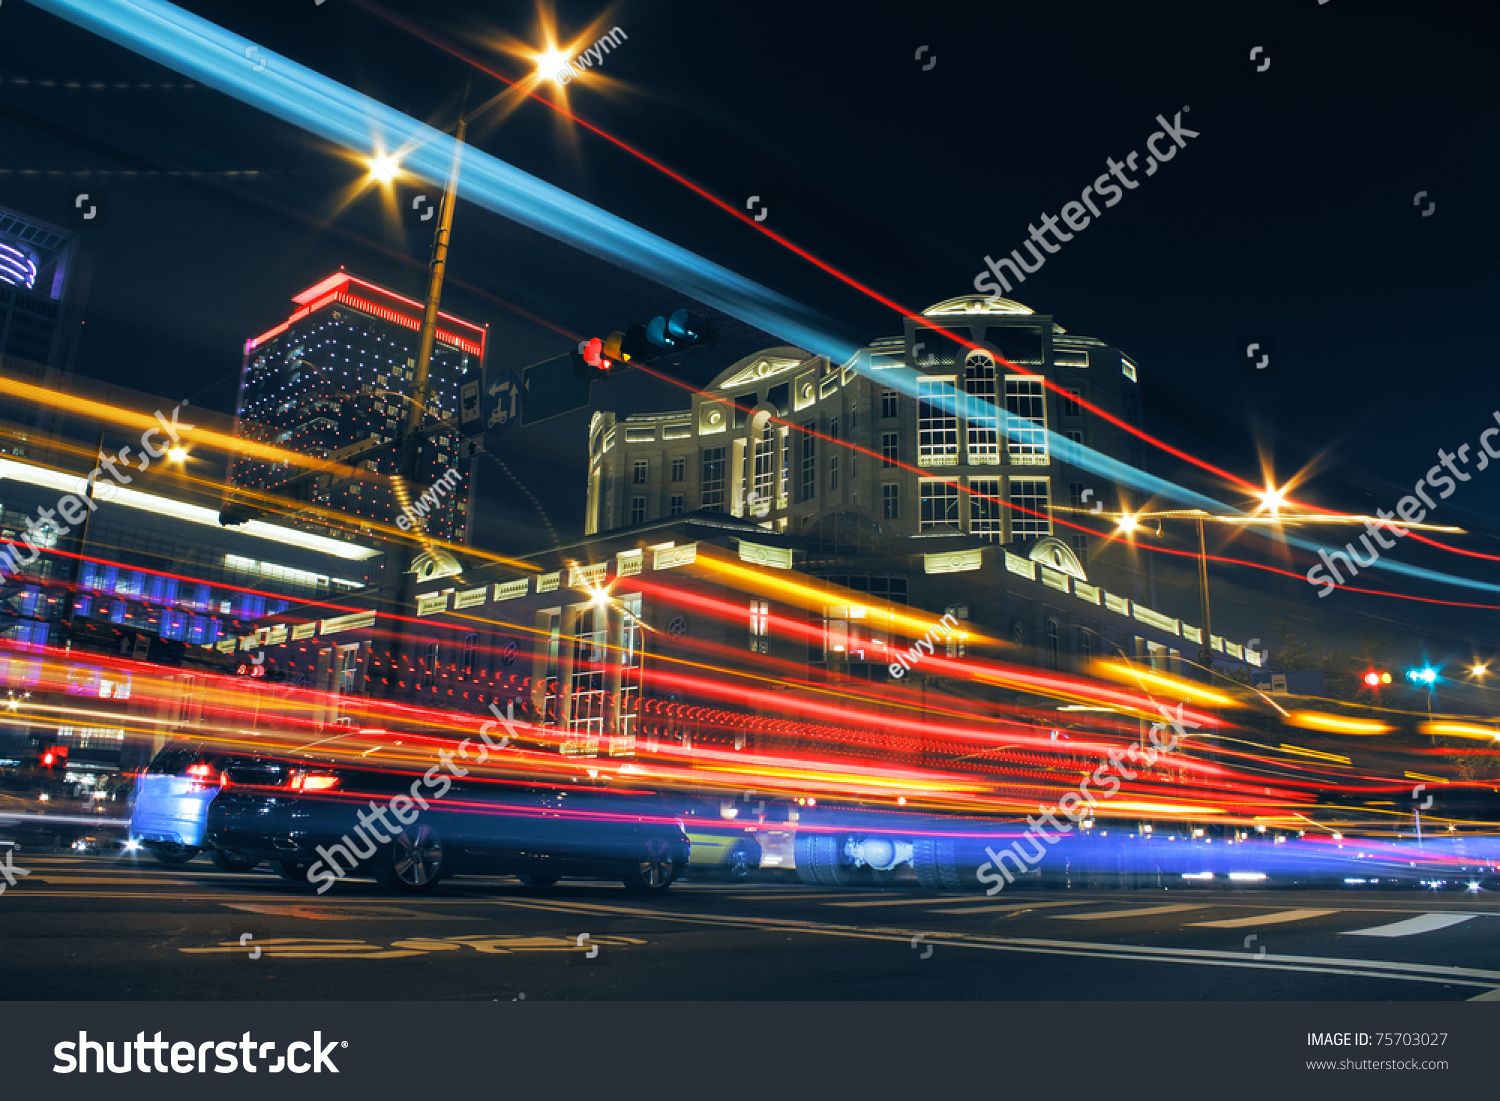 Colorful City Night With Lights Of Cars Motion Blurred In ...  Colorful City N...